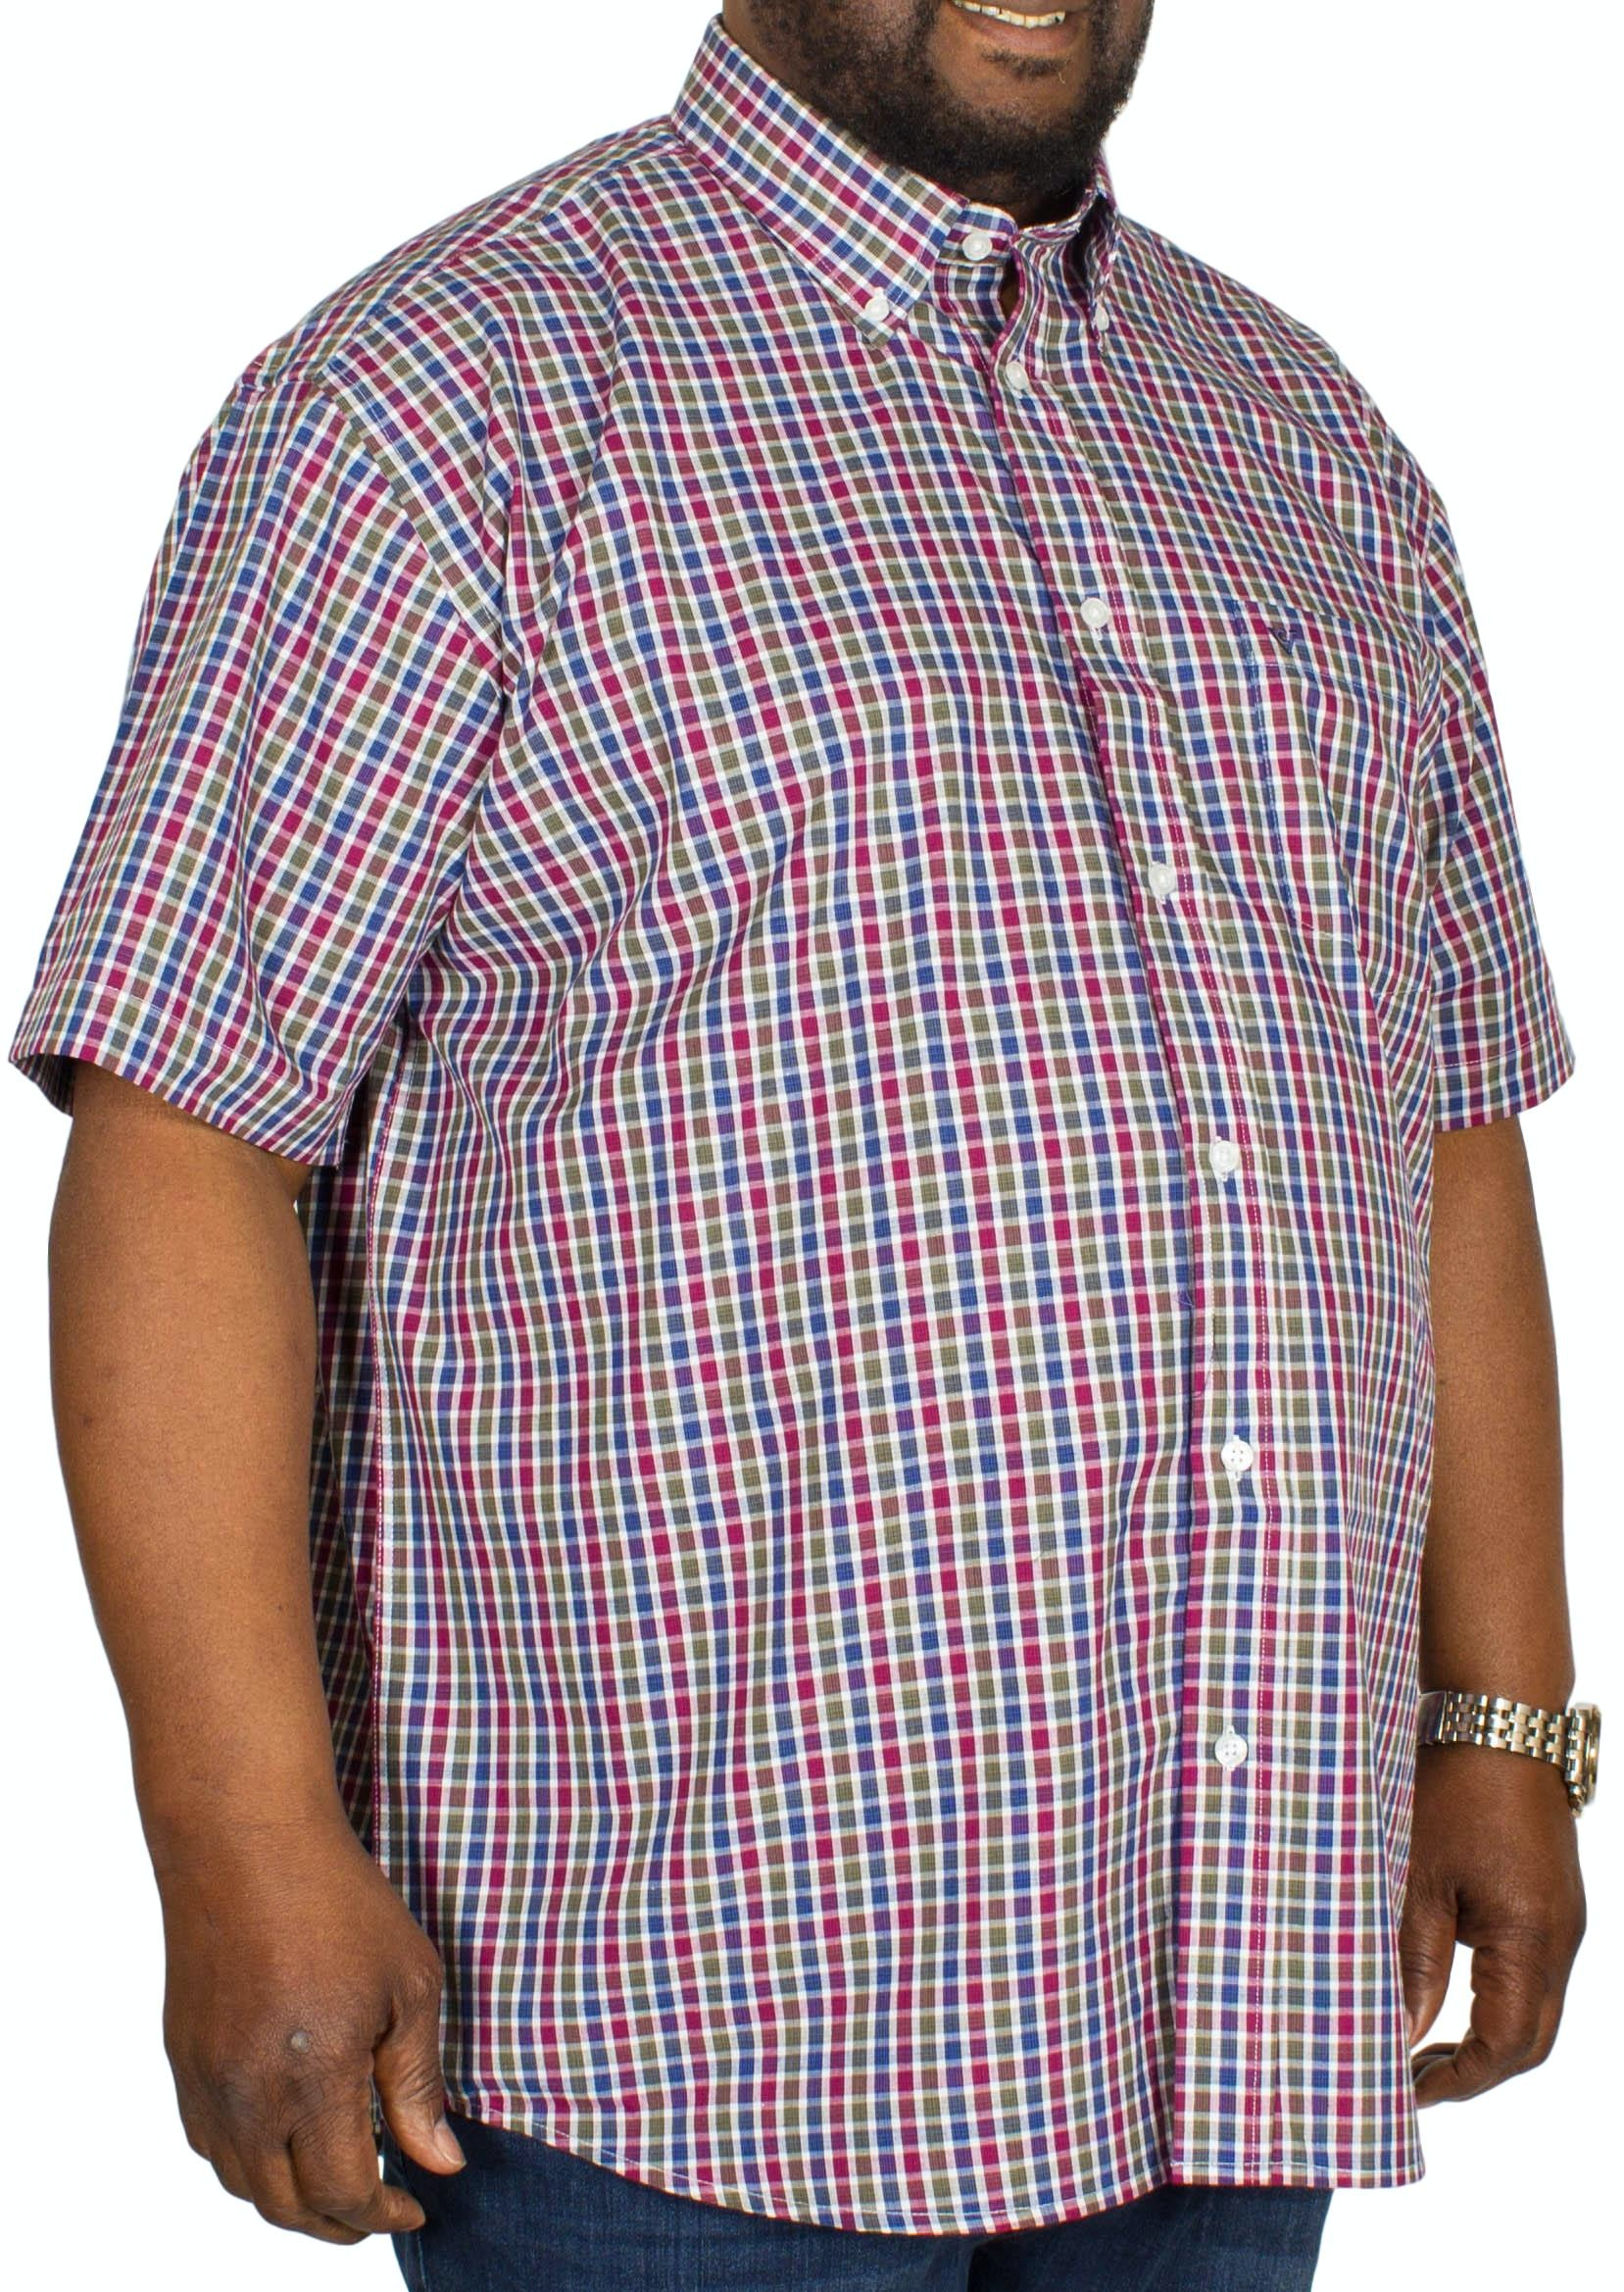 Cotton Valley Check Short Sleeve Shirt Berry